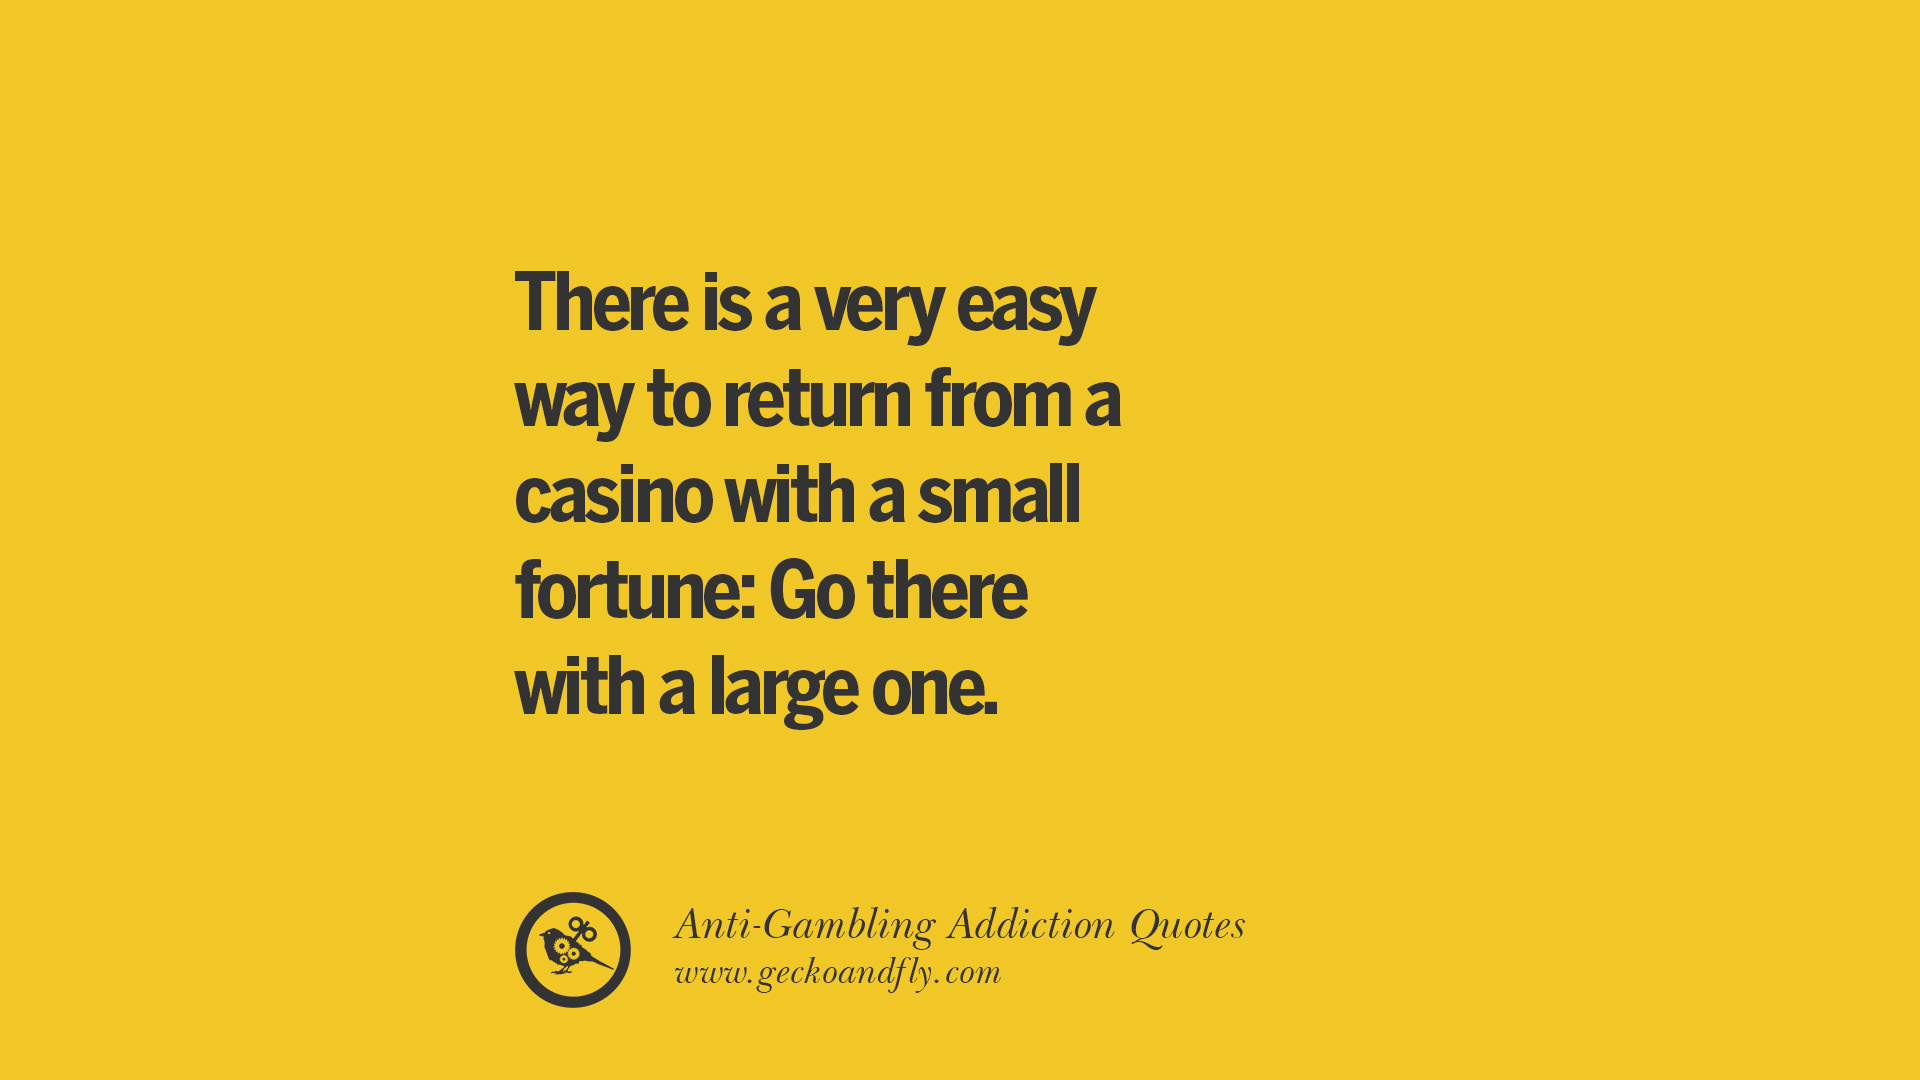 Addiction Quotes | 22 Anti Gambling And Addiction Quotes Be A Proud Quitter